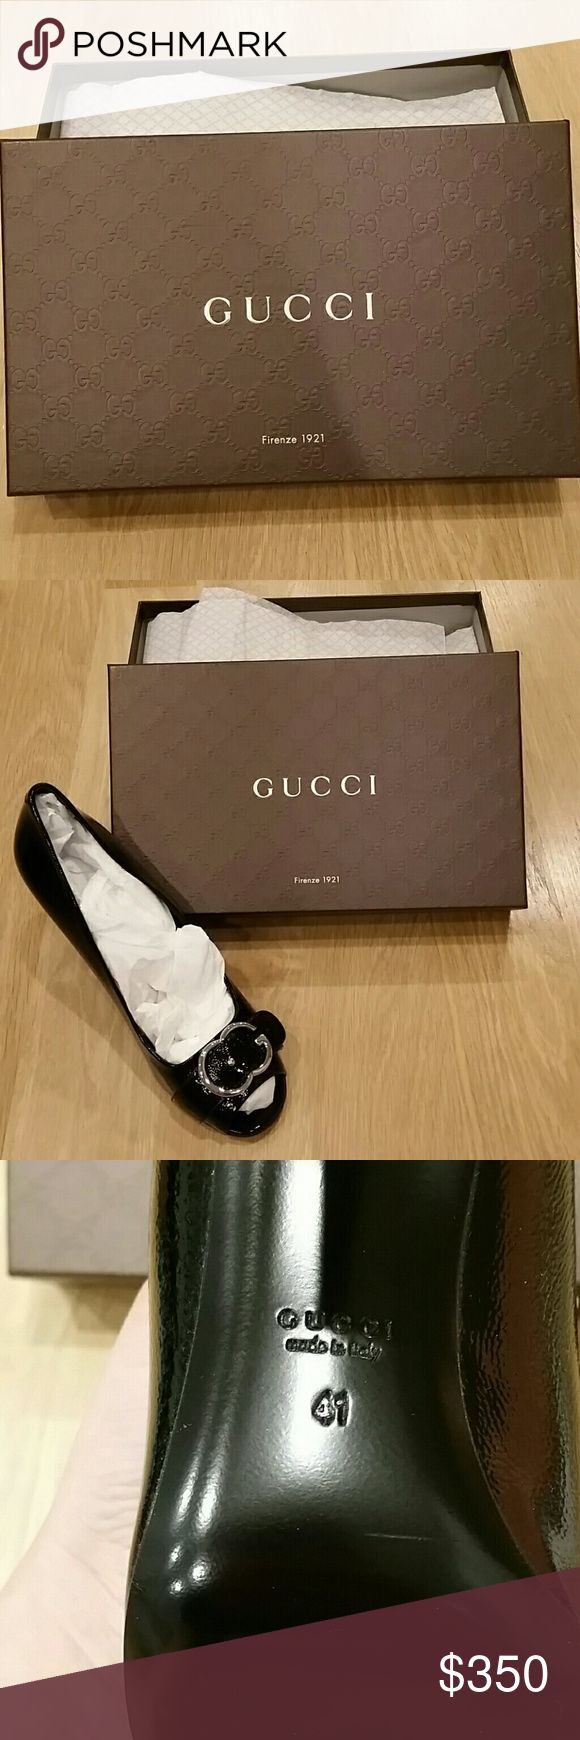 Authentic Gucci patent leather heels Brand new in box, only tried them on in the house but too scared to venture outside in them!   price is firm as I am not even sure I want to part with these. Any questions please ask Gucci Shoes Heels